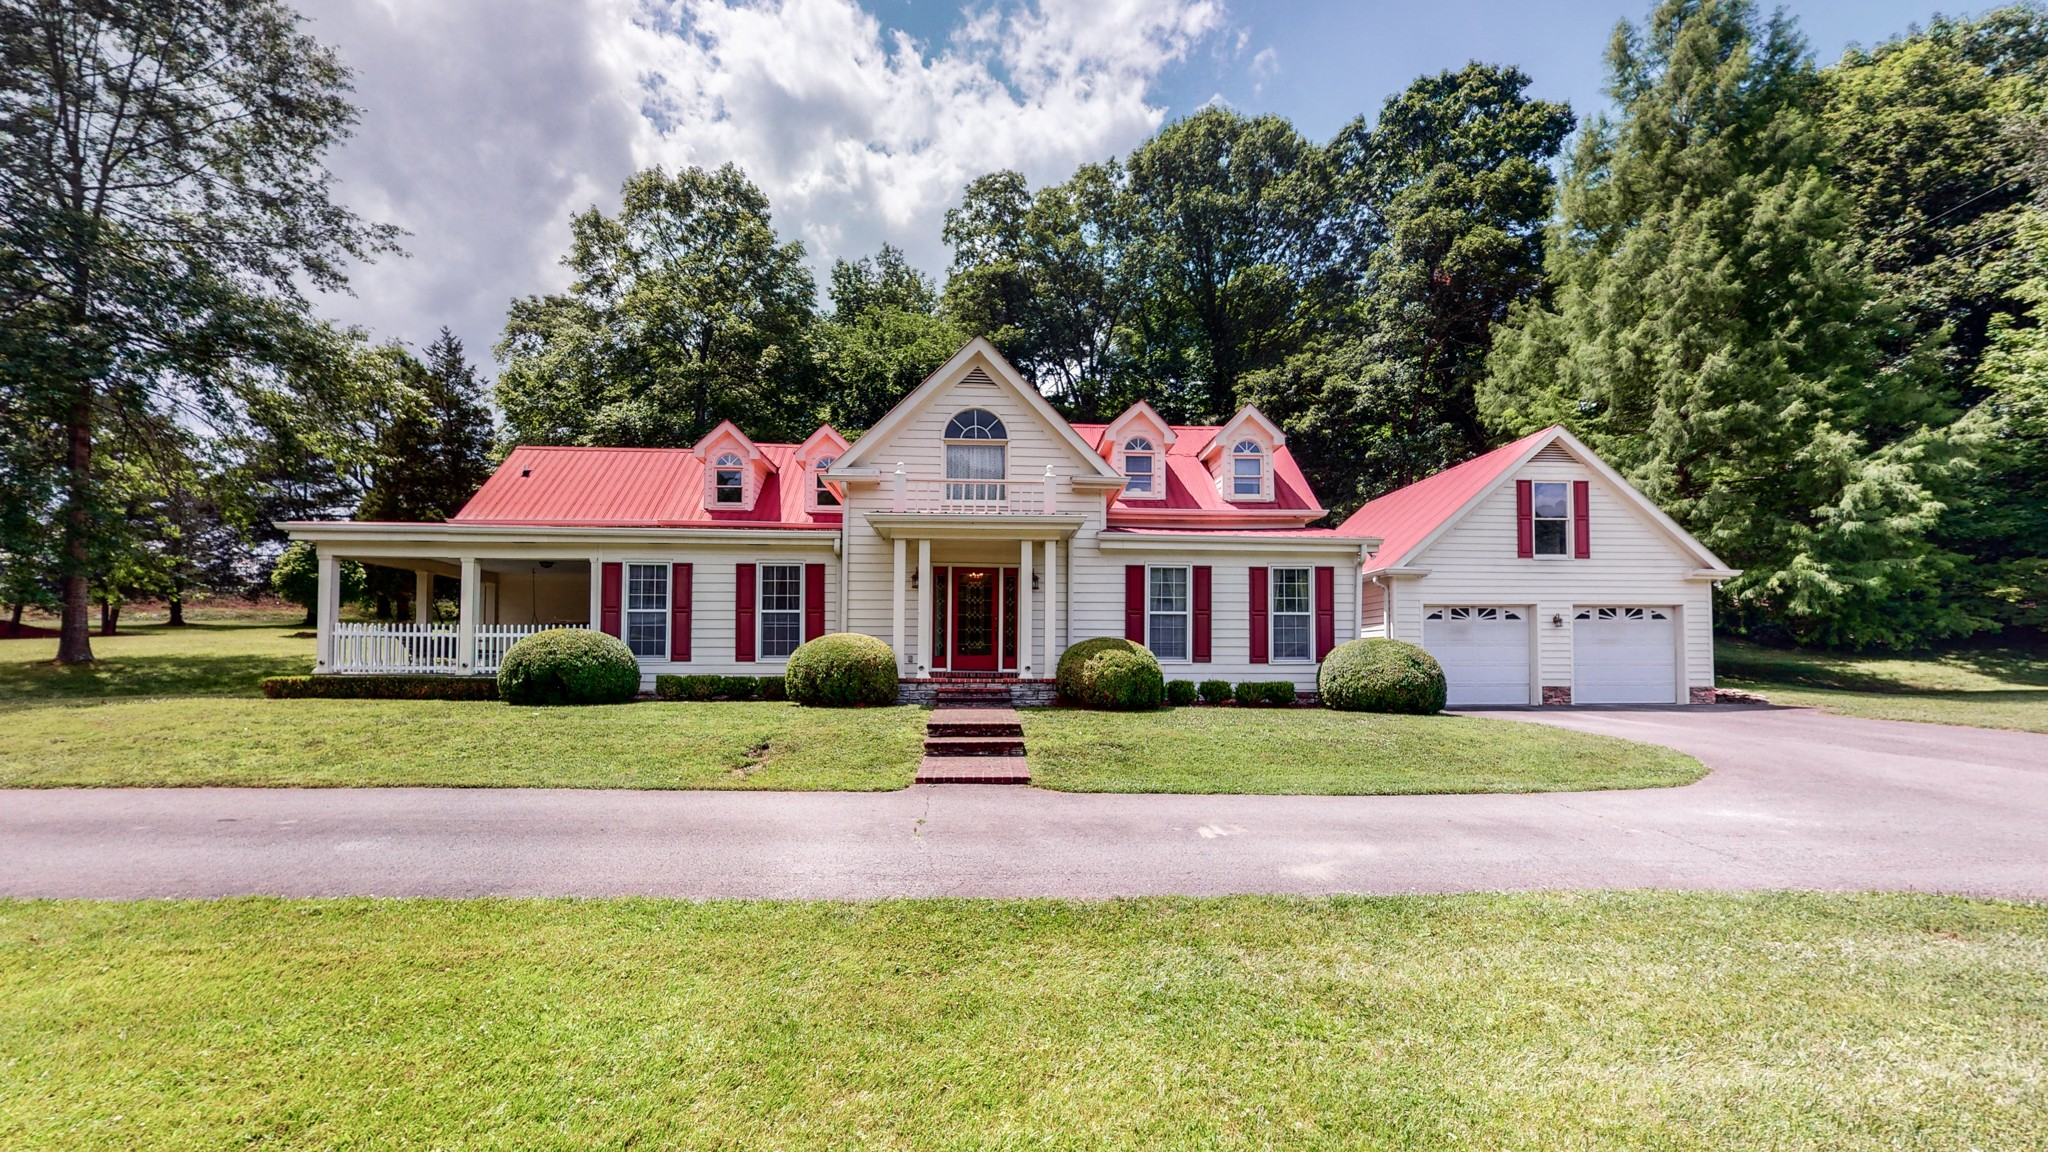 3068 Abednego Rd Property Photo - Greenbrier, TN real estate listing